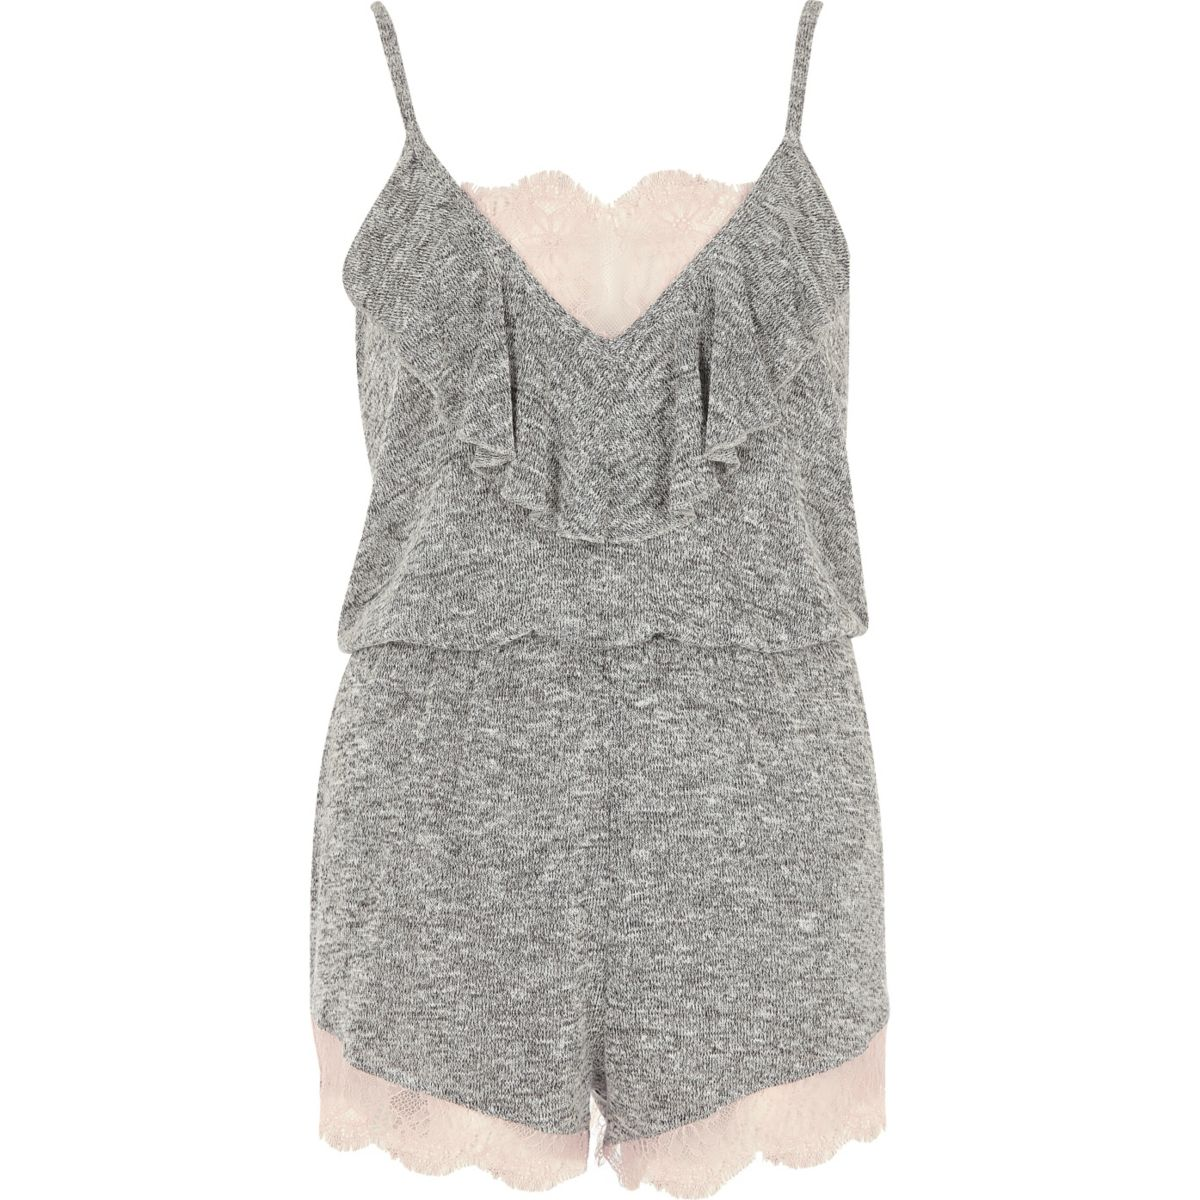 Grey marl lace playsuit